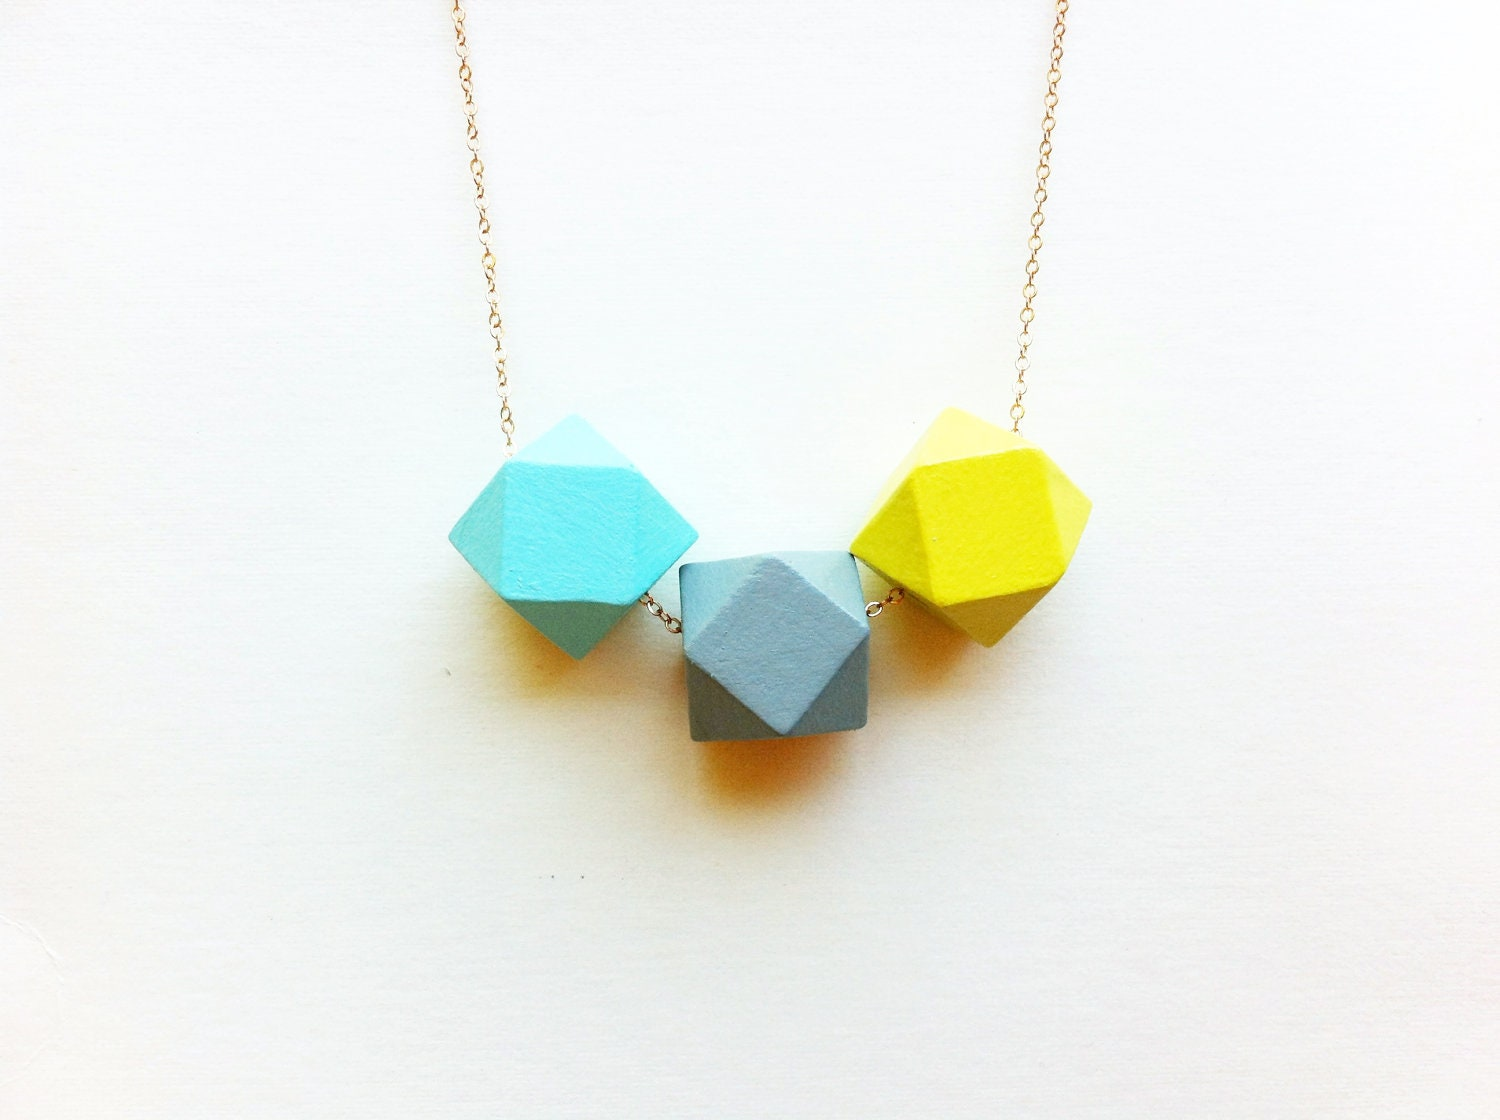 Neon Faceted Wood Necklace in Aqua, Gray and Yellow / Minimalist Bright Jewelry / Color Block - FableAndLore